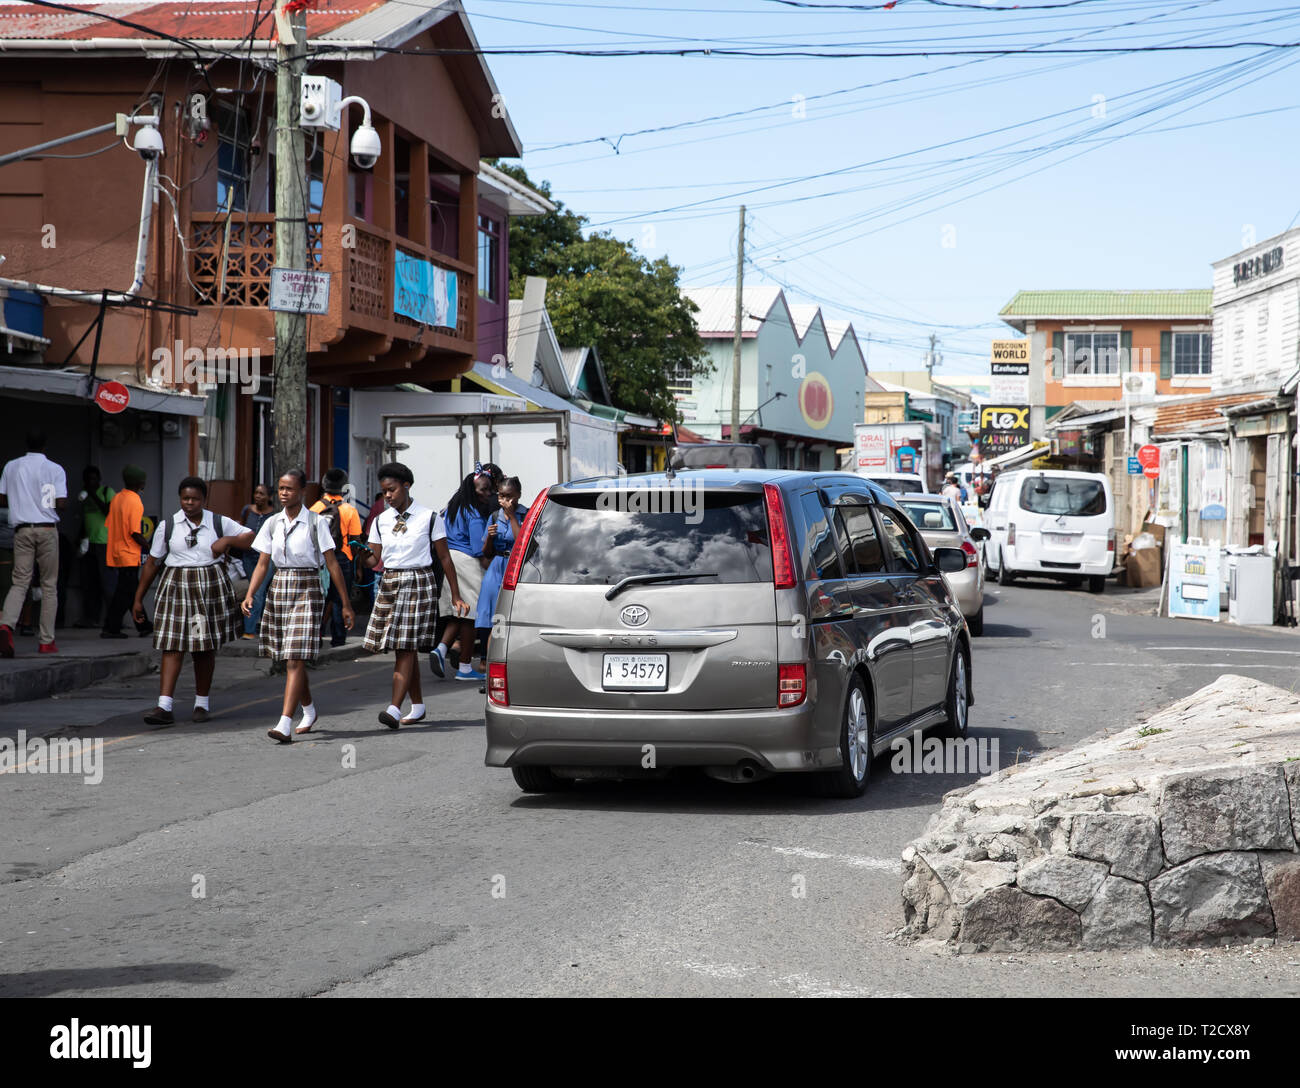 in Saint John's, Capital of Antigua and Barbuda Stock Photo